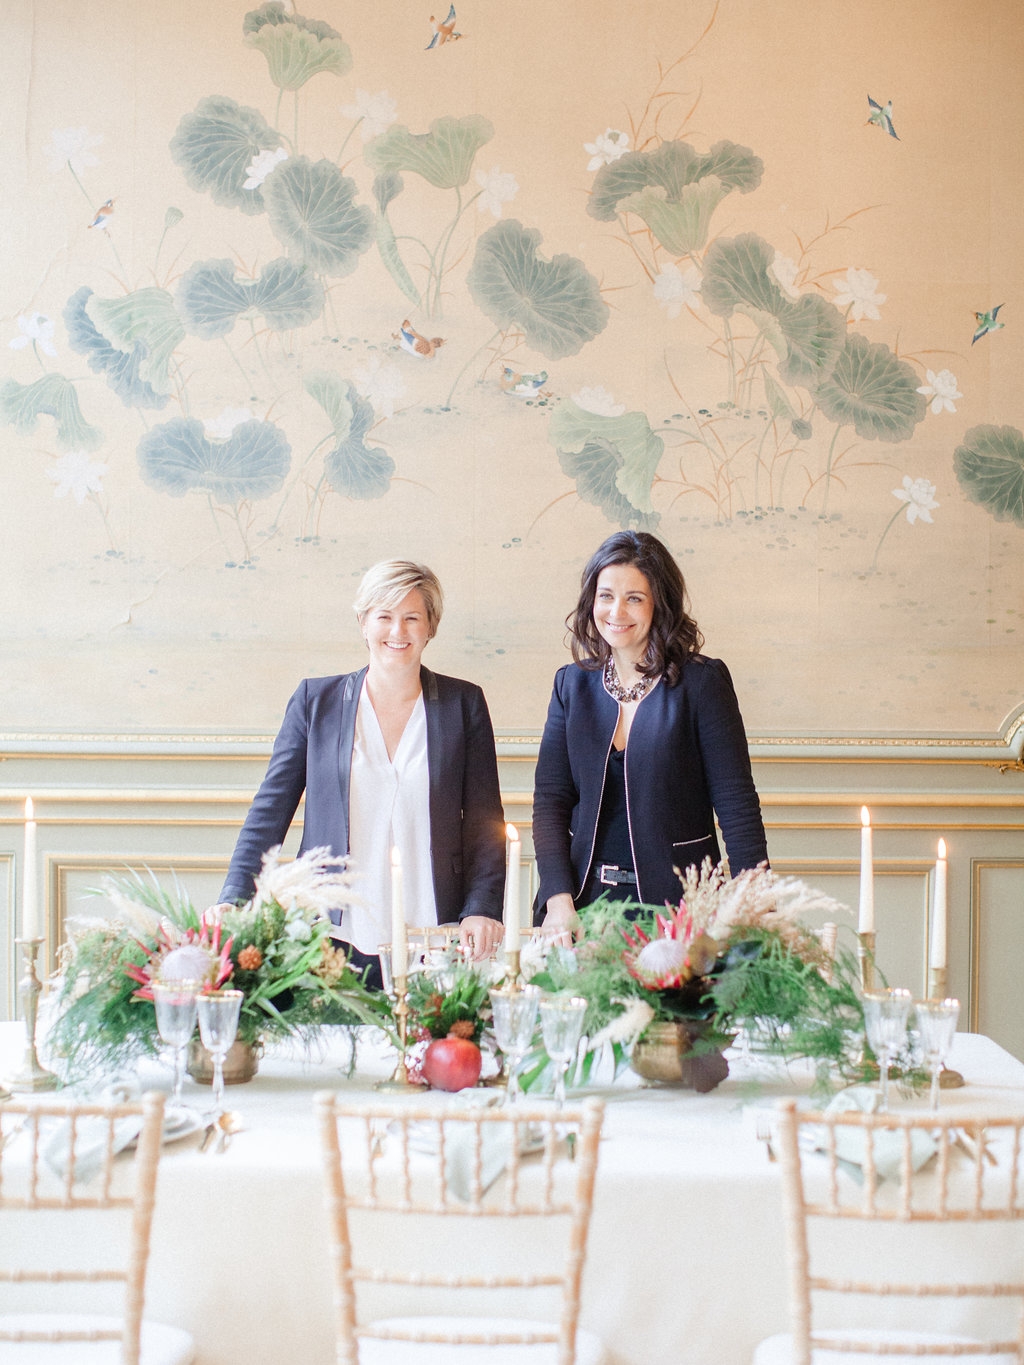 American Wedding Planners in France